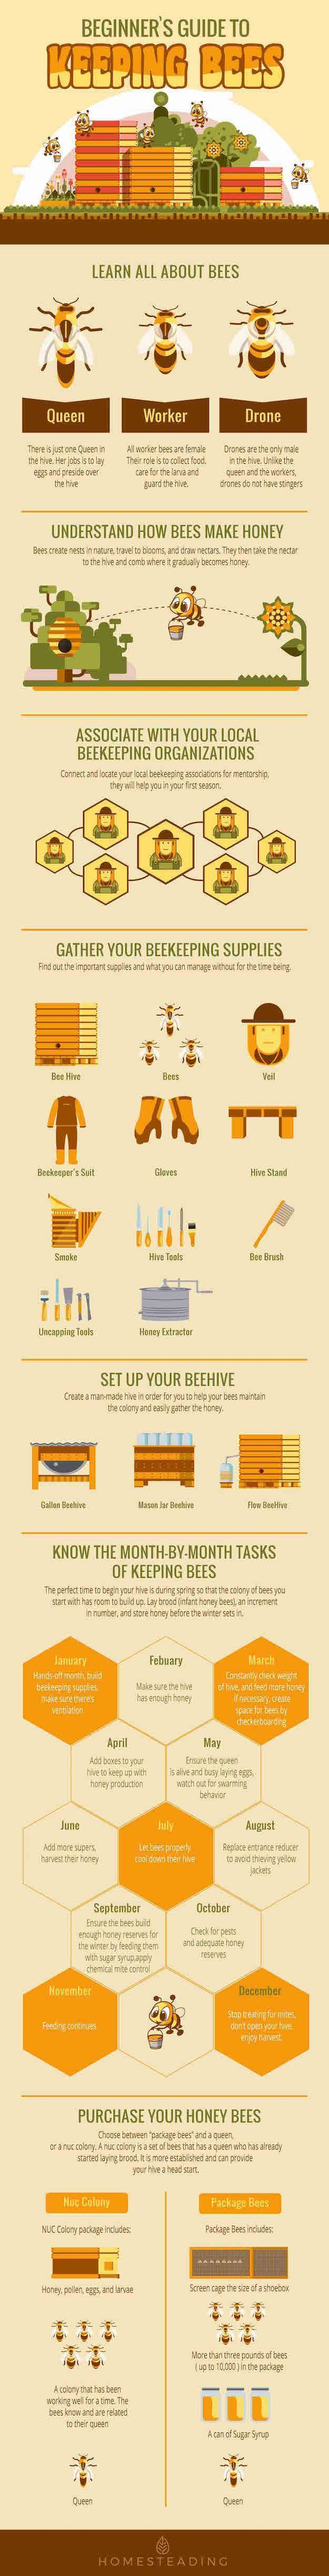 Beginners Guide To Keeping Bees Bees Bee Keeping And Beekeeping - Backyard beekeeping for beginners